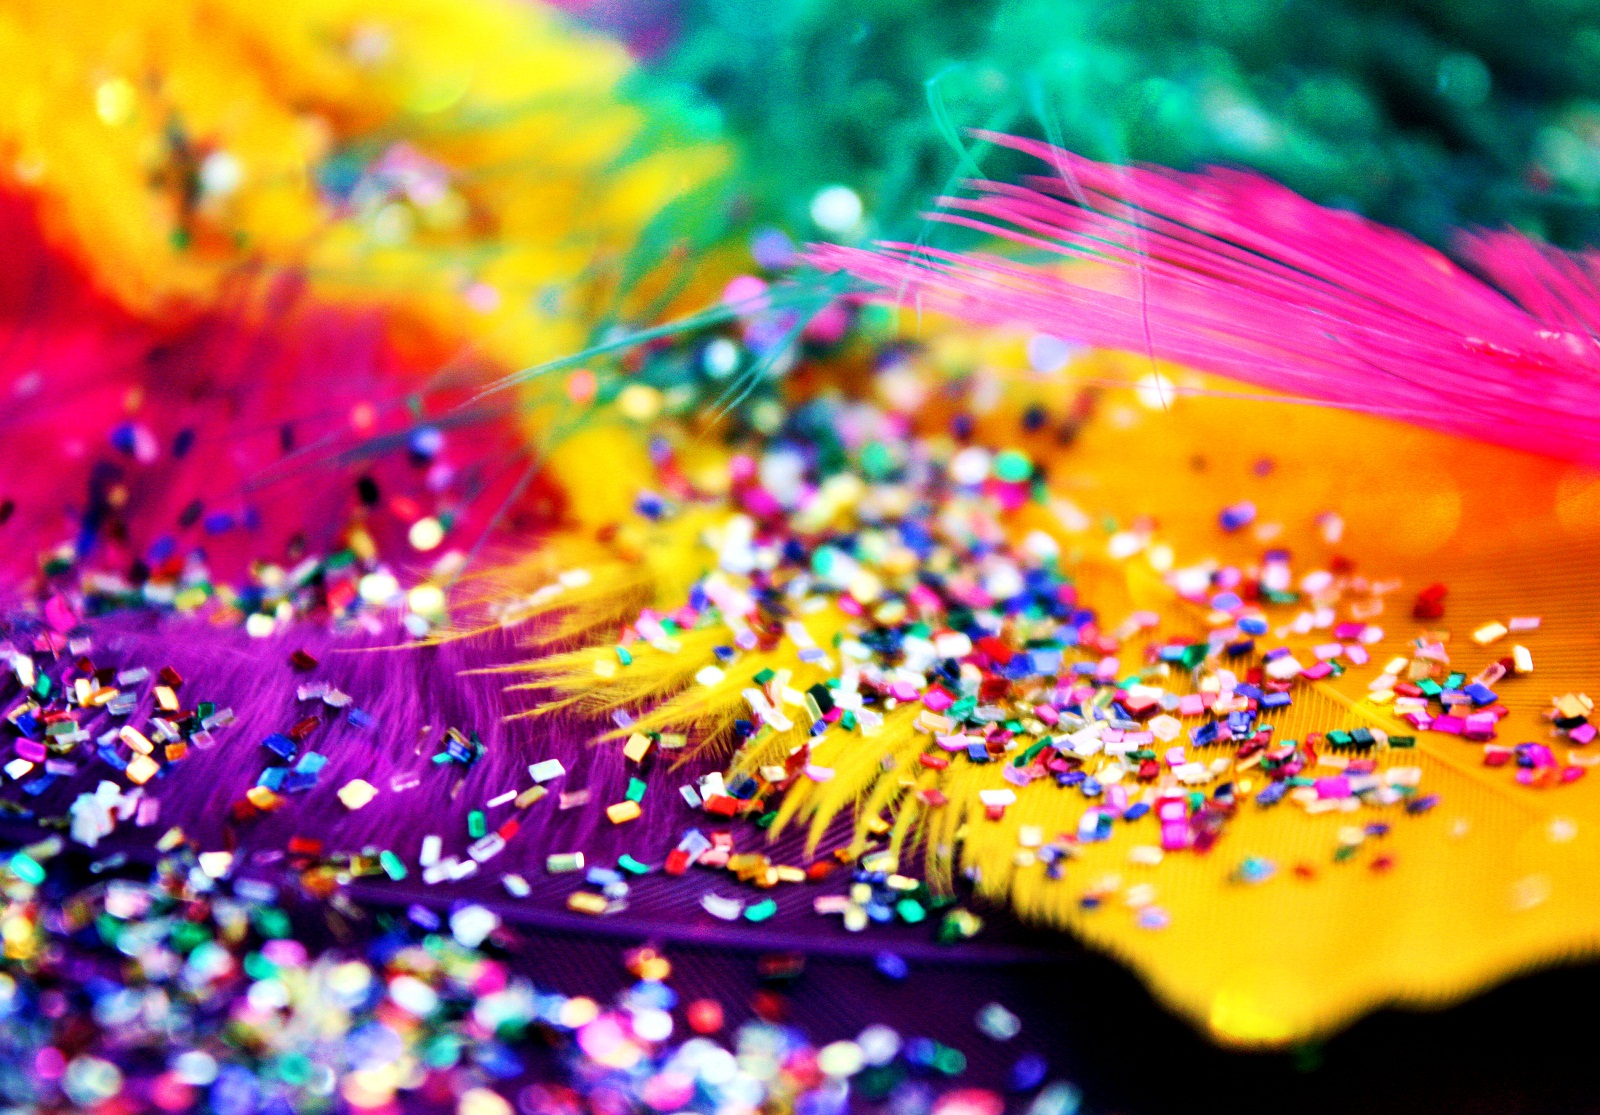 Abstract Beautiful Colorful Wallpaper